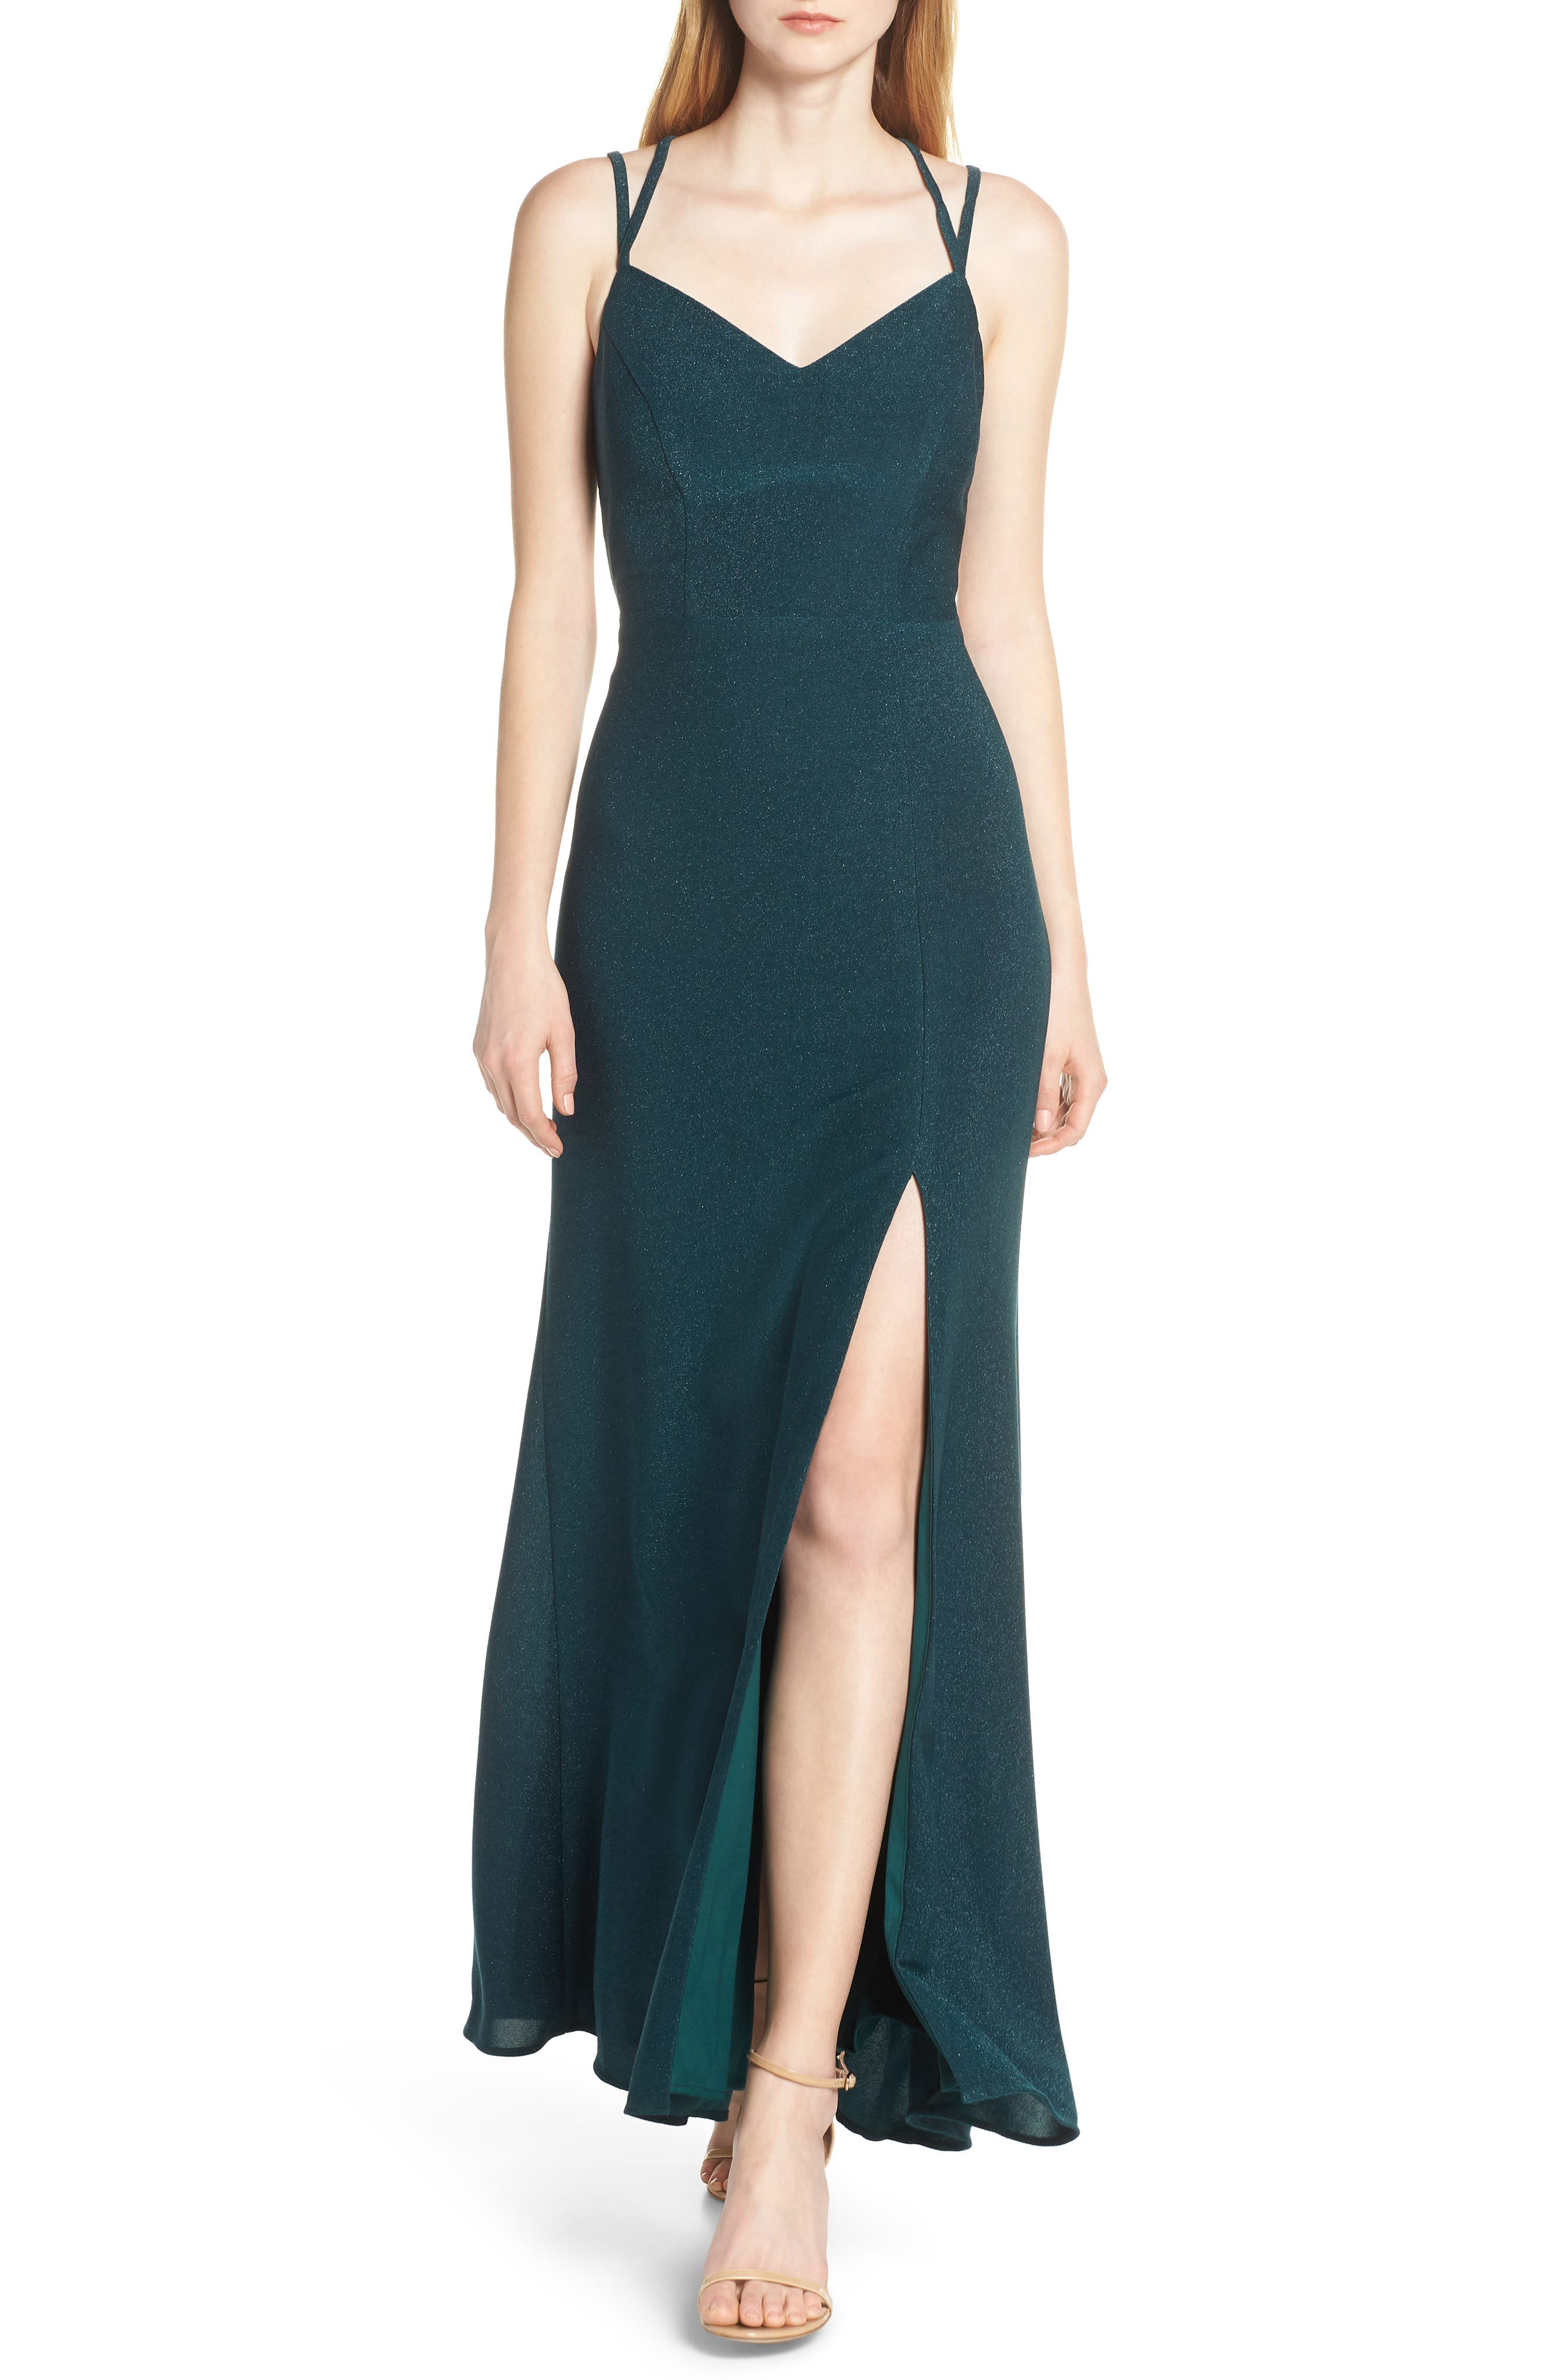 Morgan & Co. Strappy Glitter Knit Evening Dress, Green